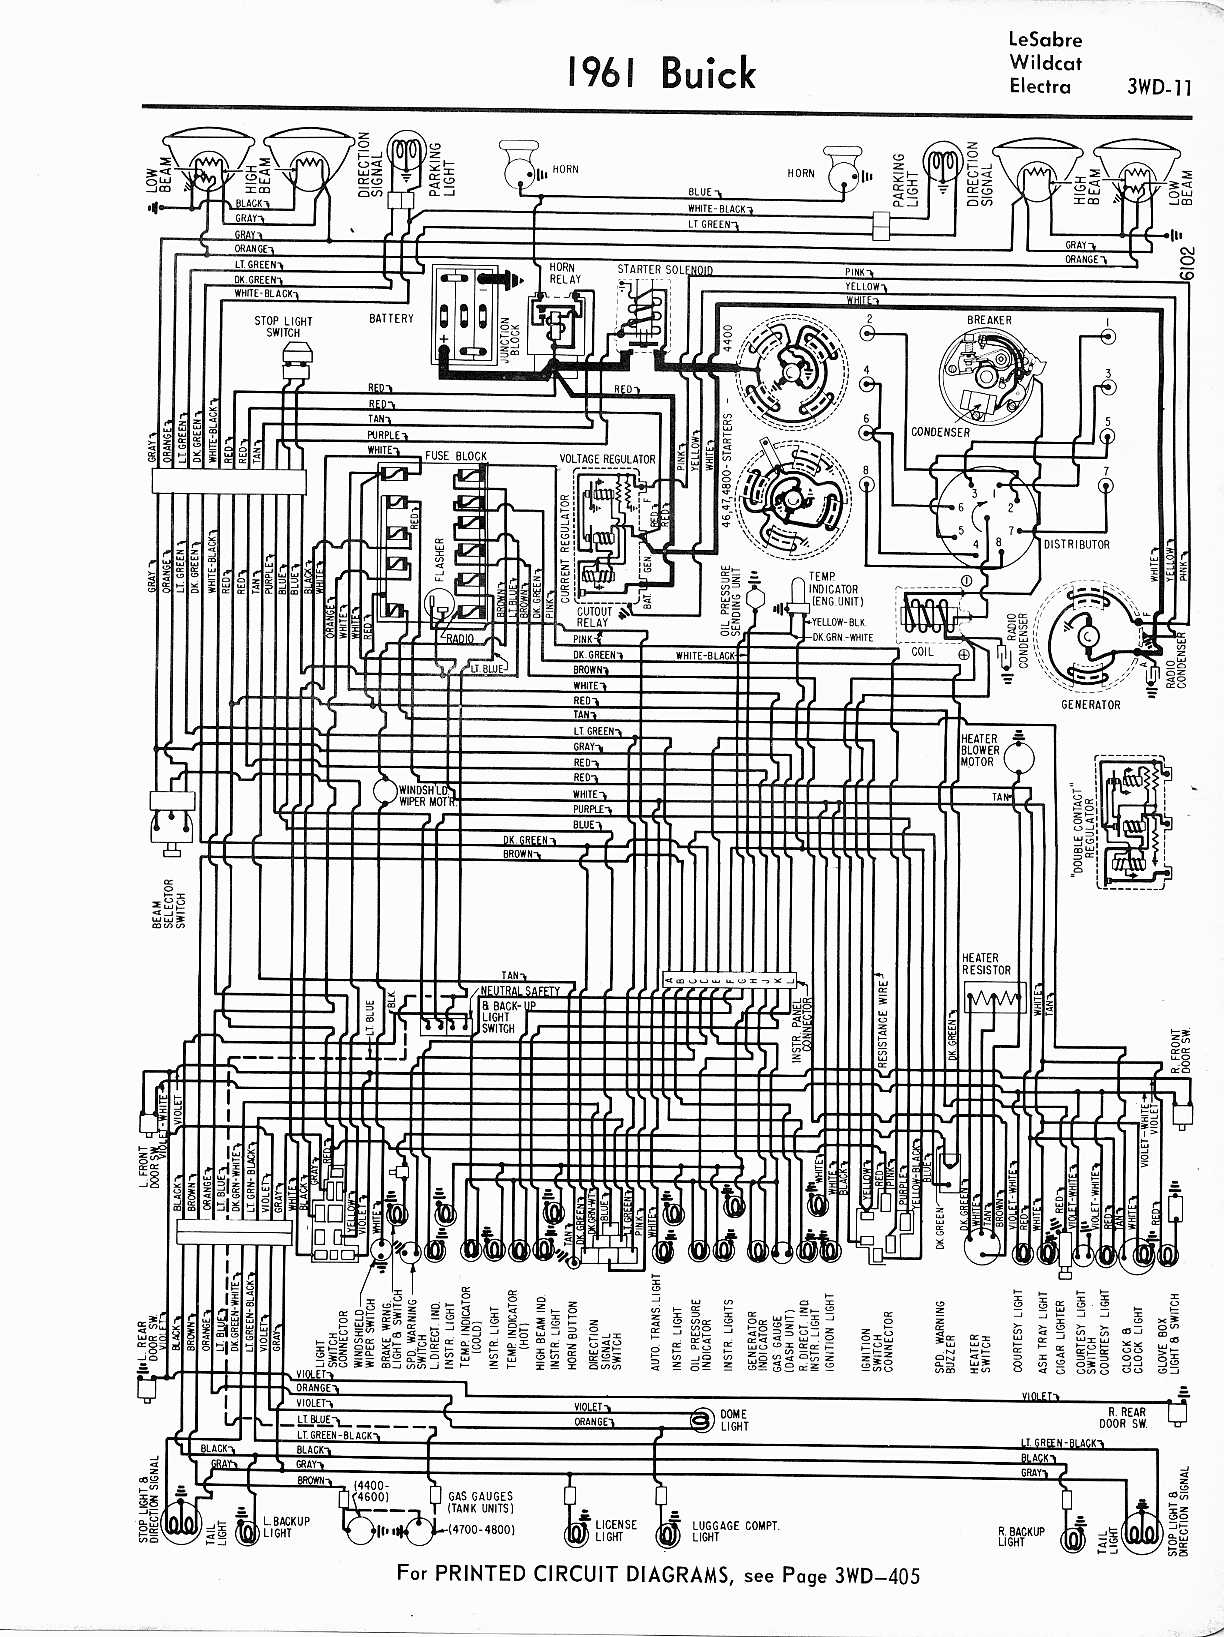 MWireBuic65_3WD 011 buick wiring diagrams 1957 1965 C7500 Wiring-Diagram at crackthecode.co